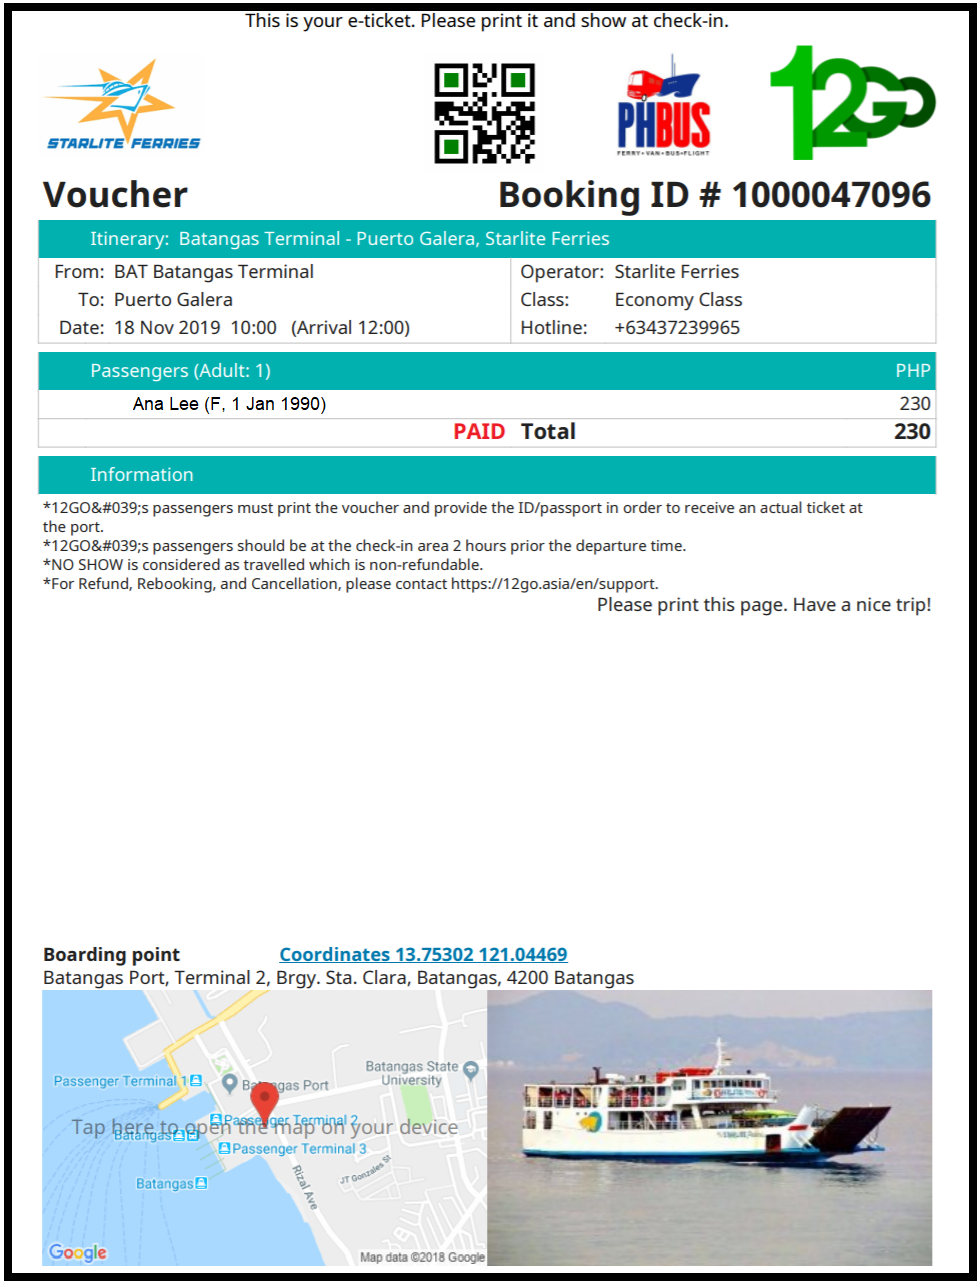 how-to-book-phbus-email-voucher.png